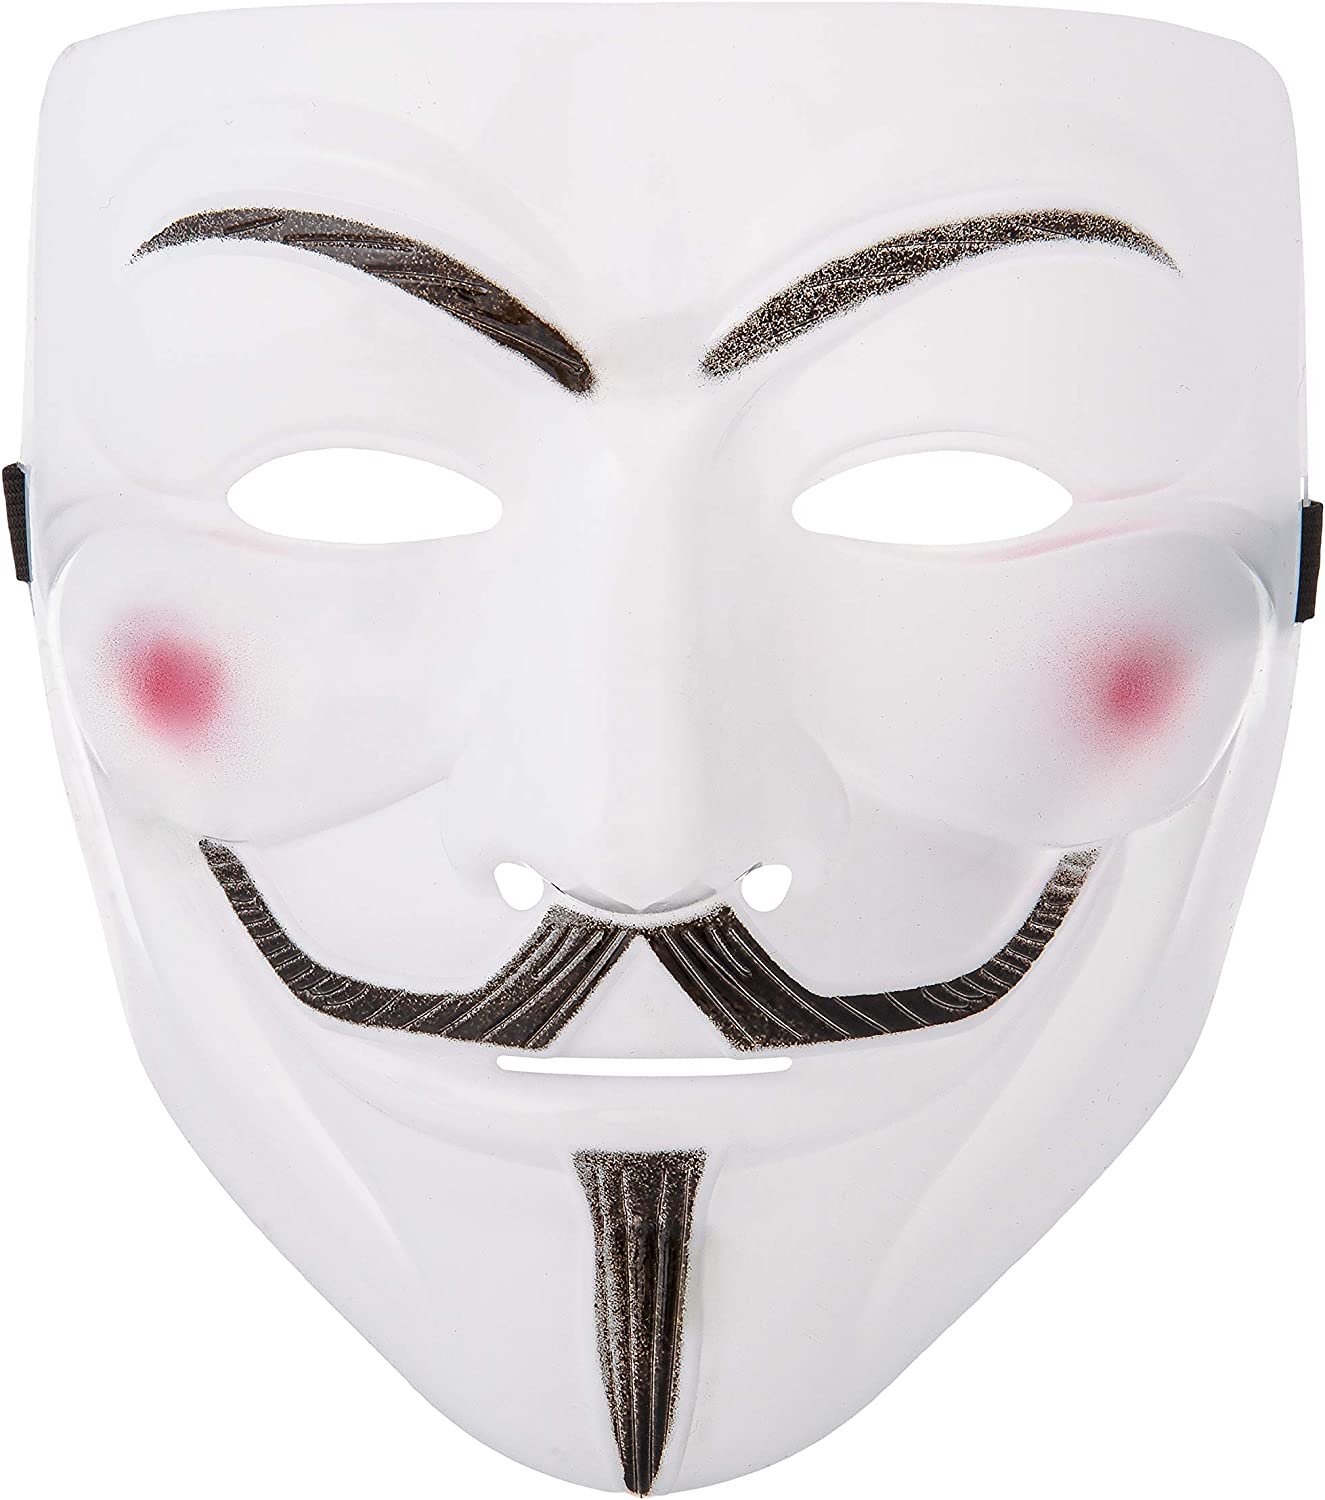 Maschera V per Vendetta Anonymous Guy Fawkes Halloween Fancy Dress Costume Cosplay